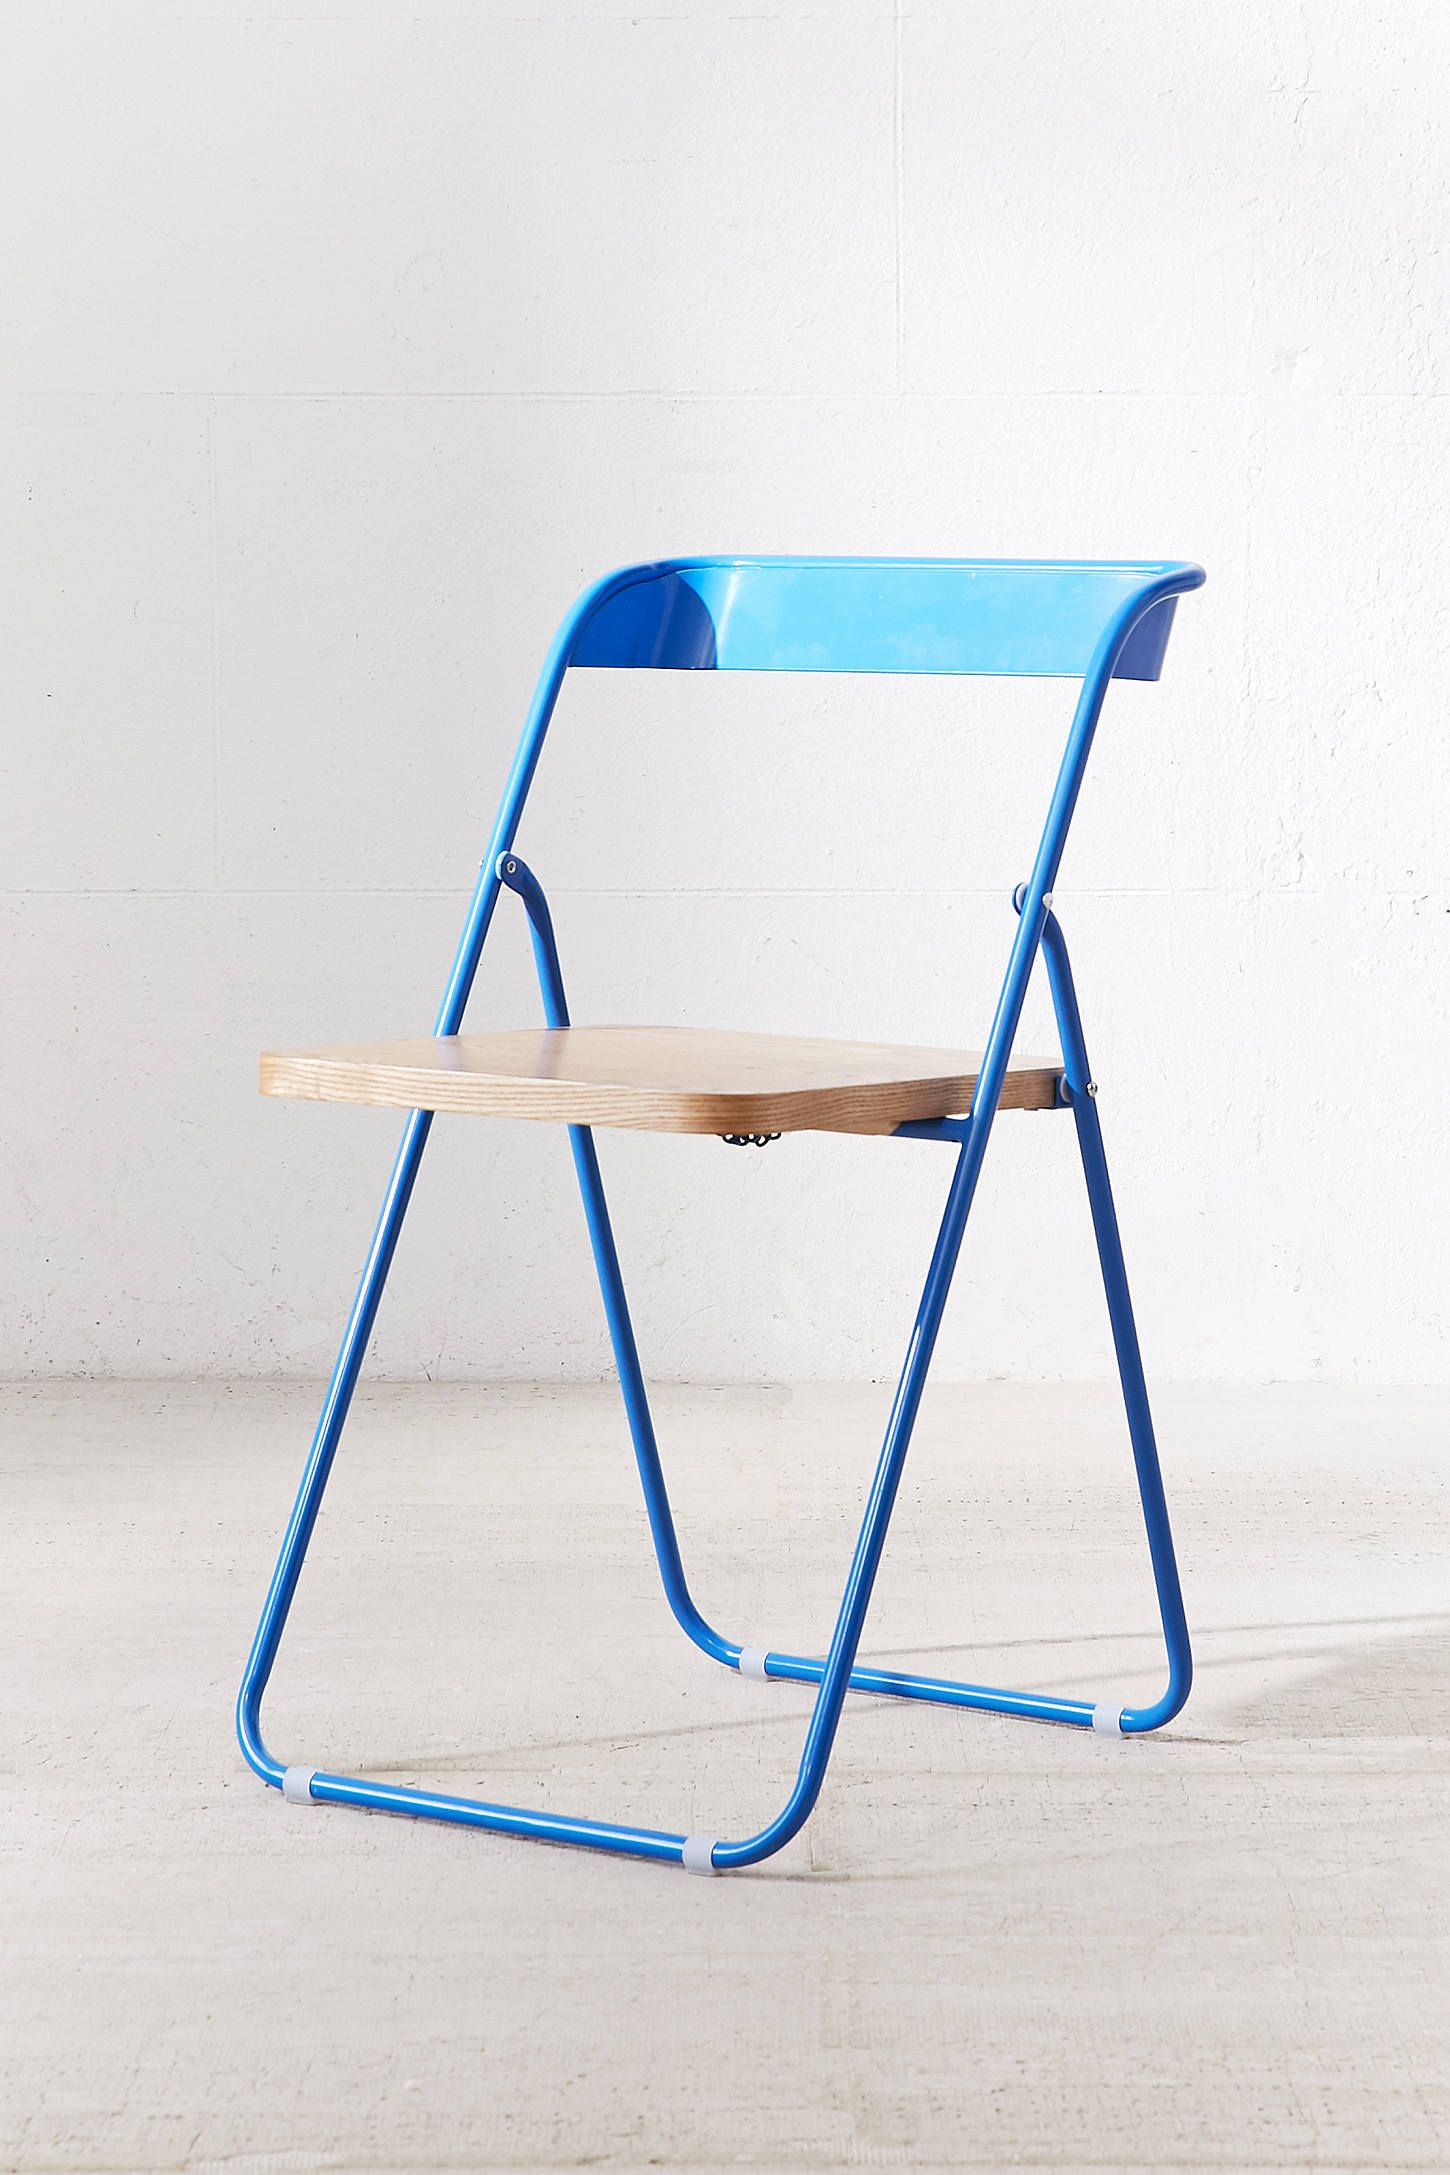 Nora Wooden Folding Chair Folding Chair Small Space Seating